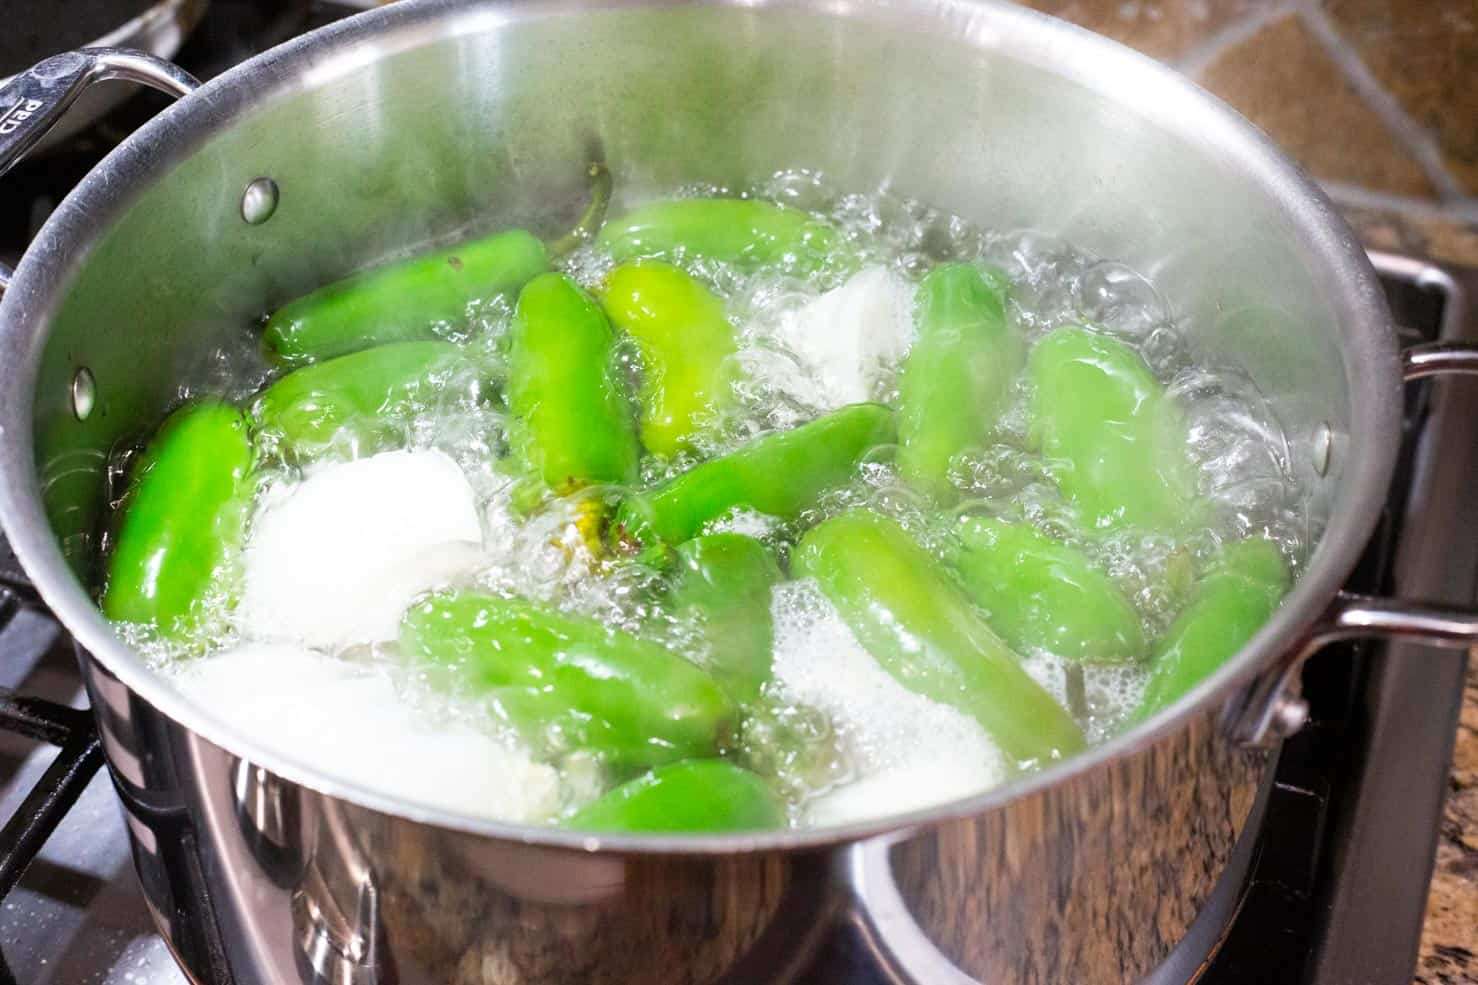 jalapenos and onion in the water bath being boiled on a stove